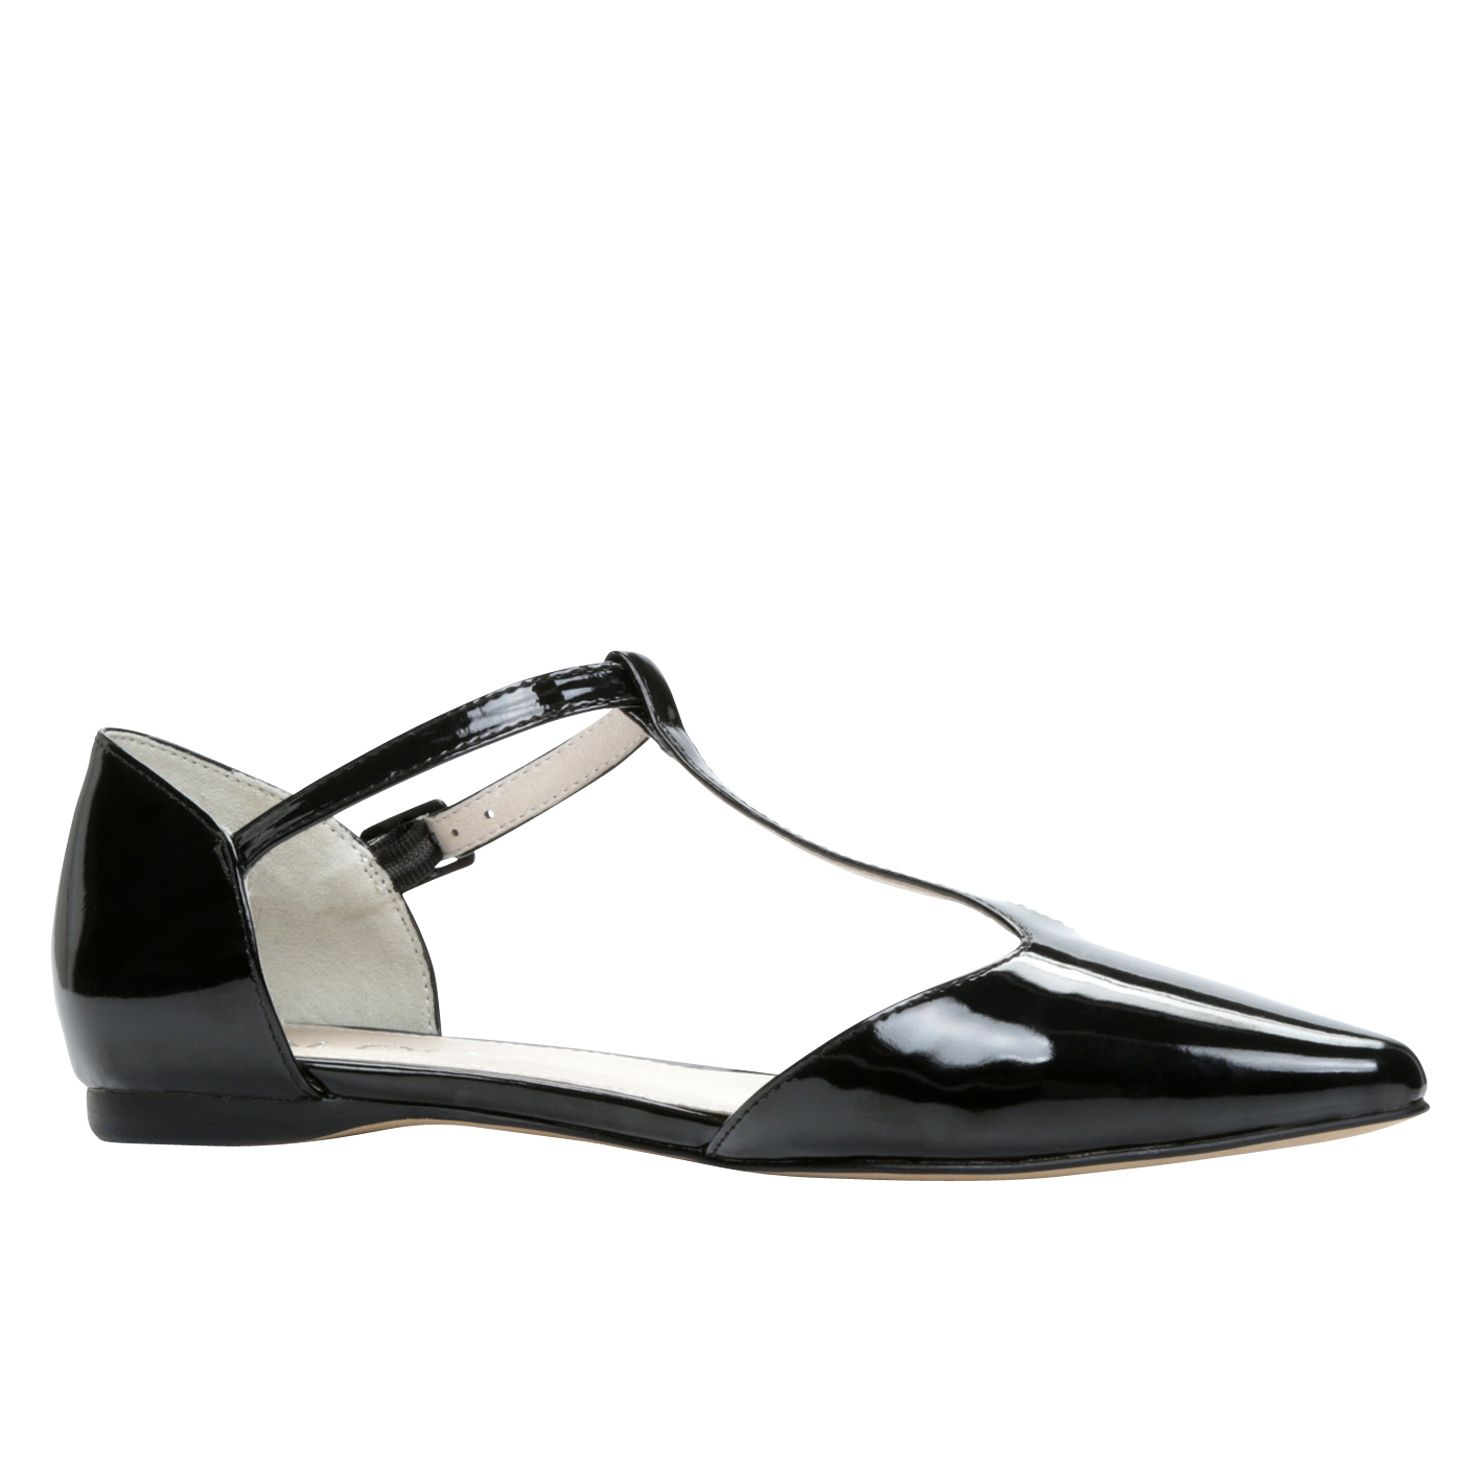 Lythgoe pointed toe t-bar pump shoes